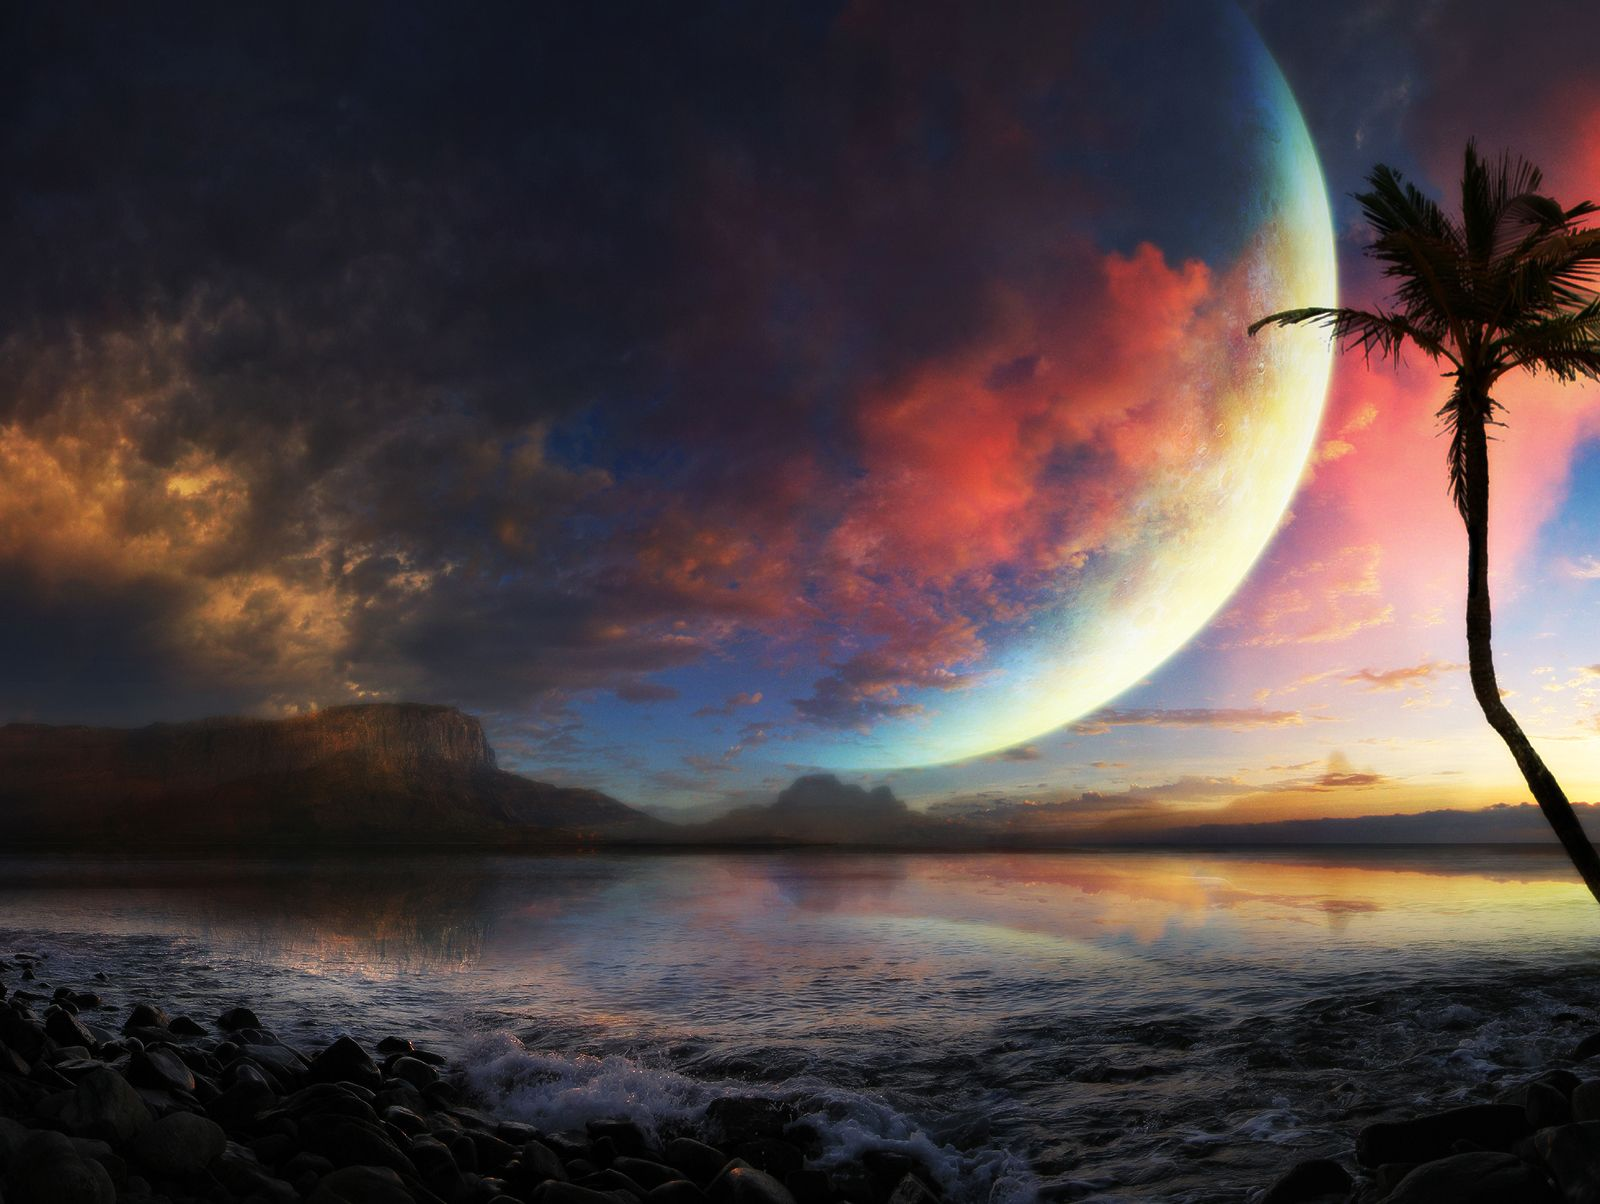 Desktop wallpapers & photos - Fantasy - Other world - 1600 x 1200